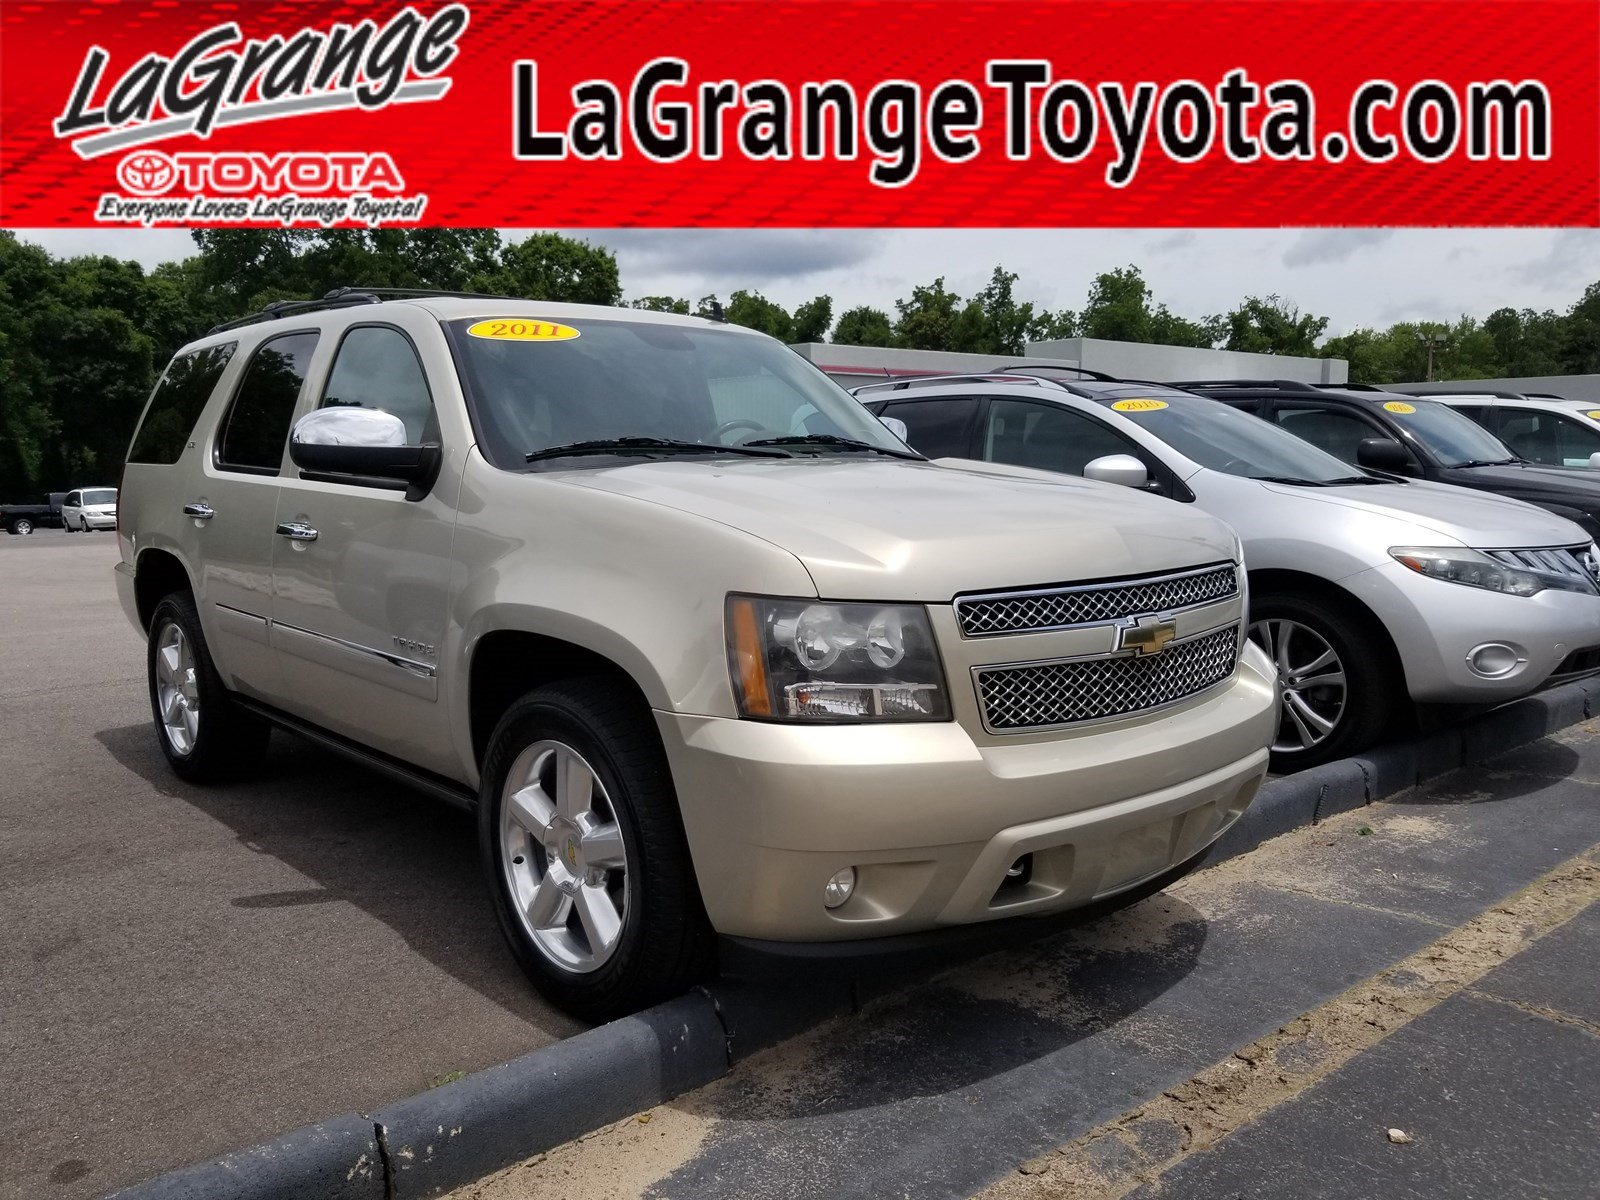 Pre-Owned 2011 Chevrolet Tahoe 4WD 4dr 1500 LTZ